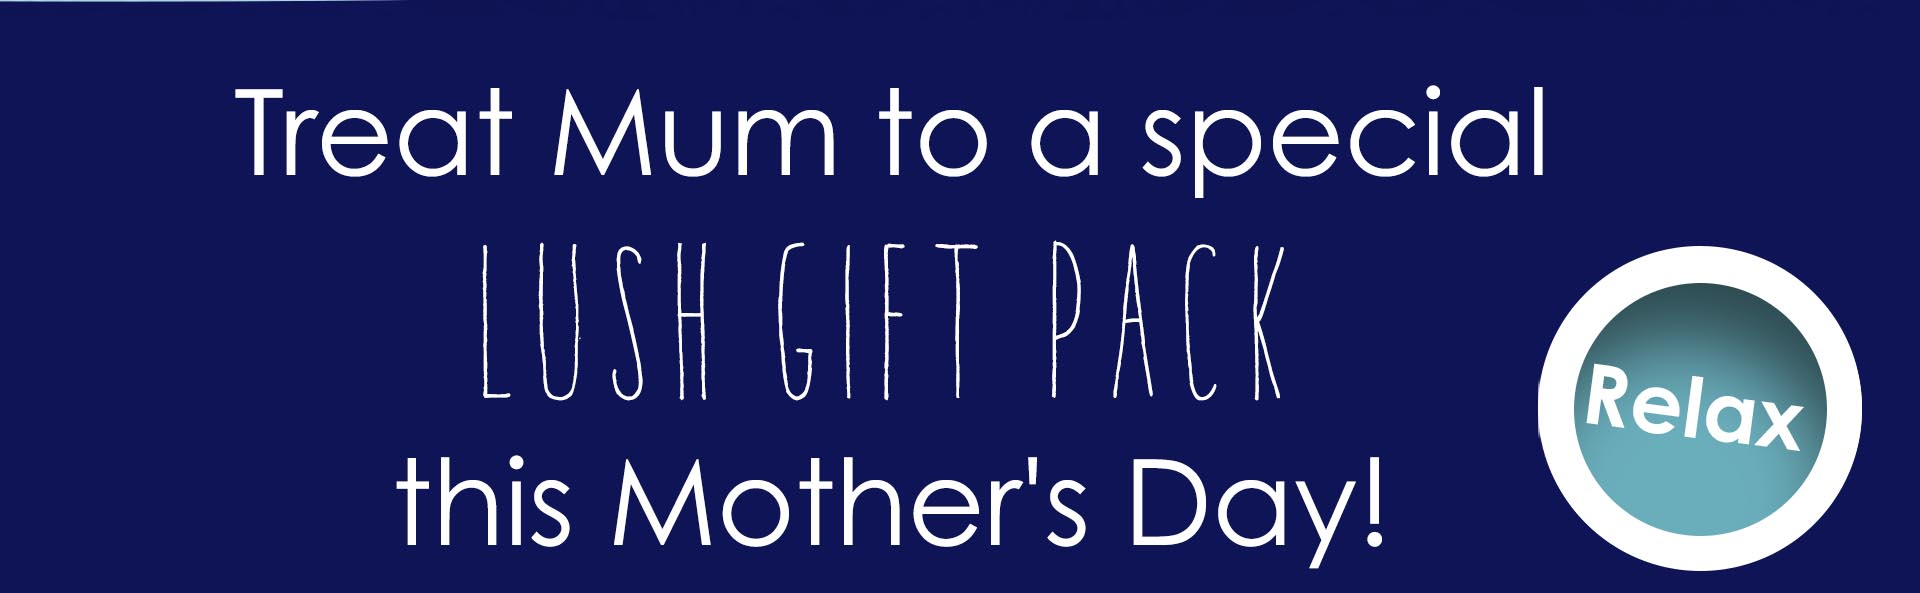 image1 - headstart-mother's day